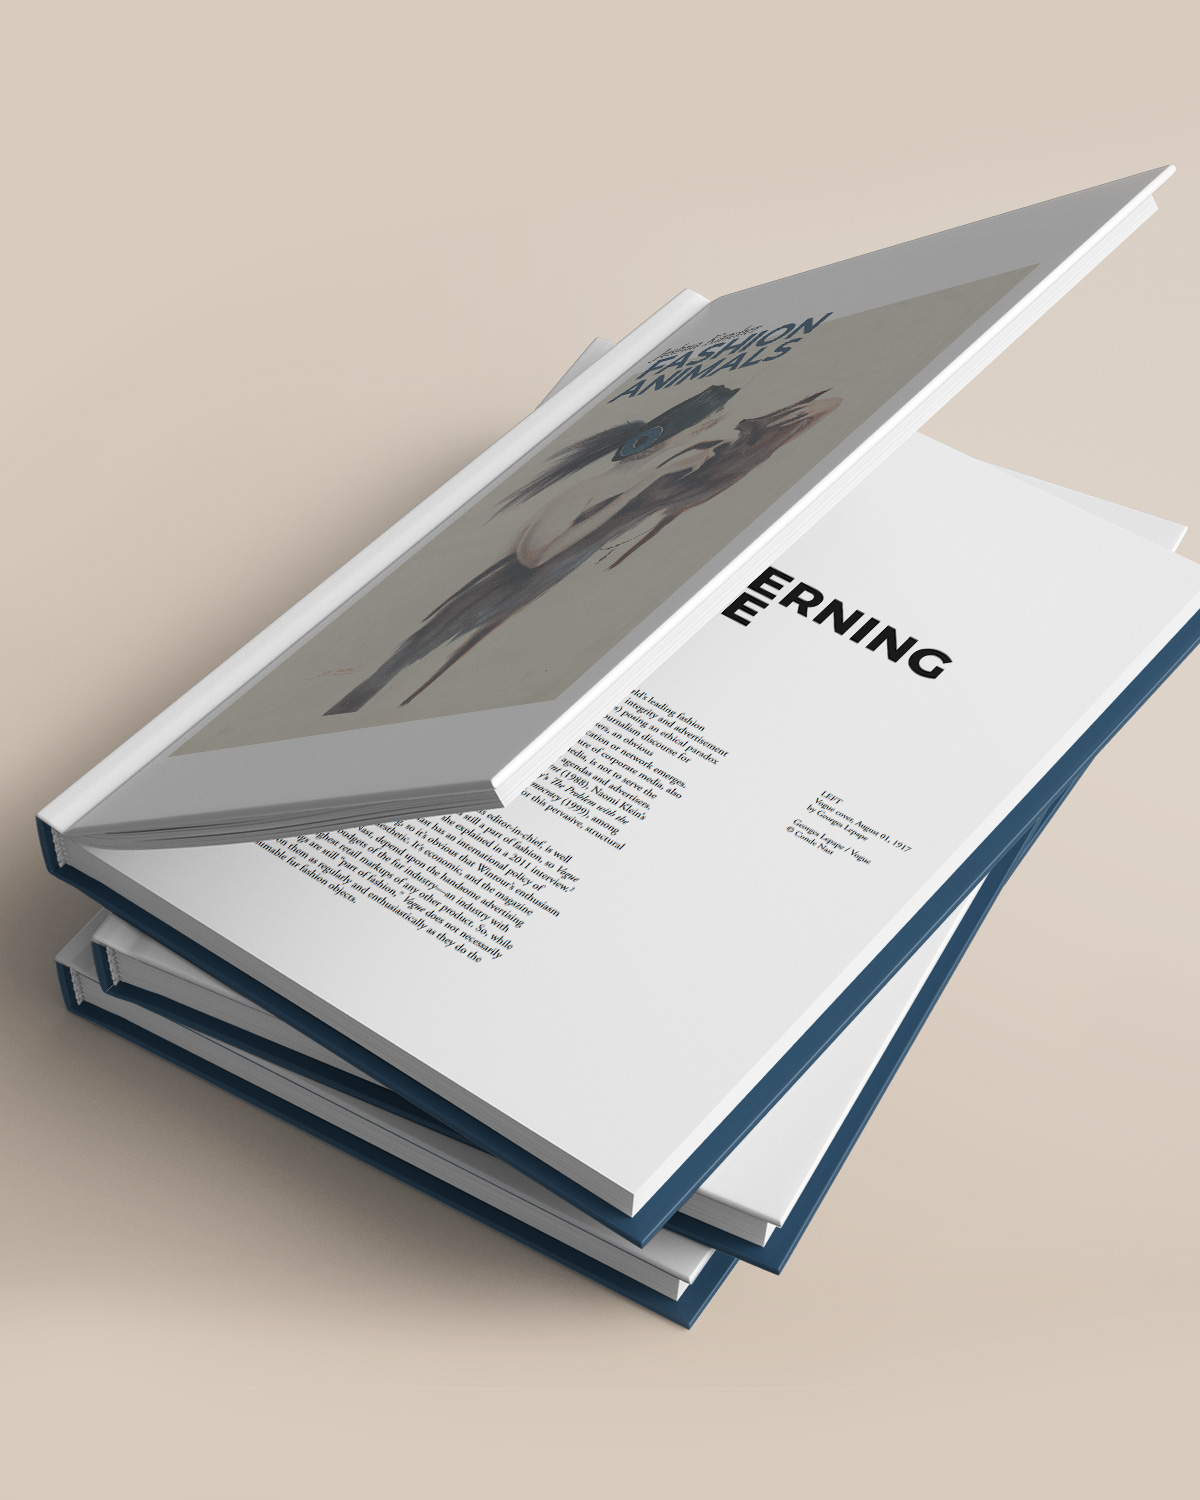 Fashion Animals Book by Joshua Katcher – designed by Very Good Looking Berlin - Antagonist